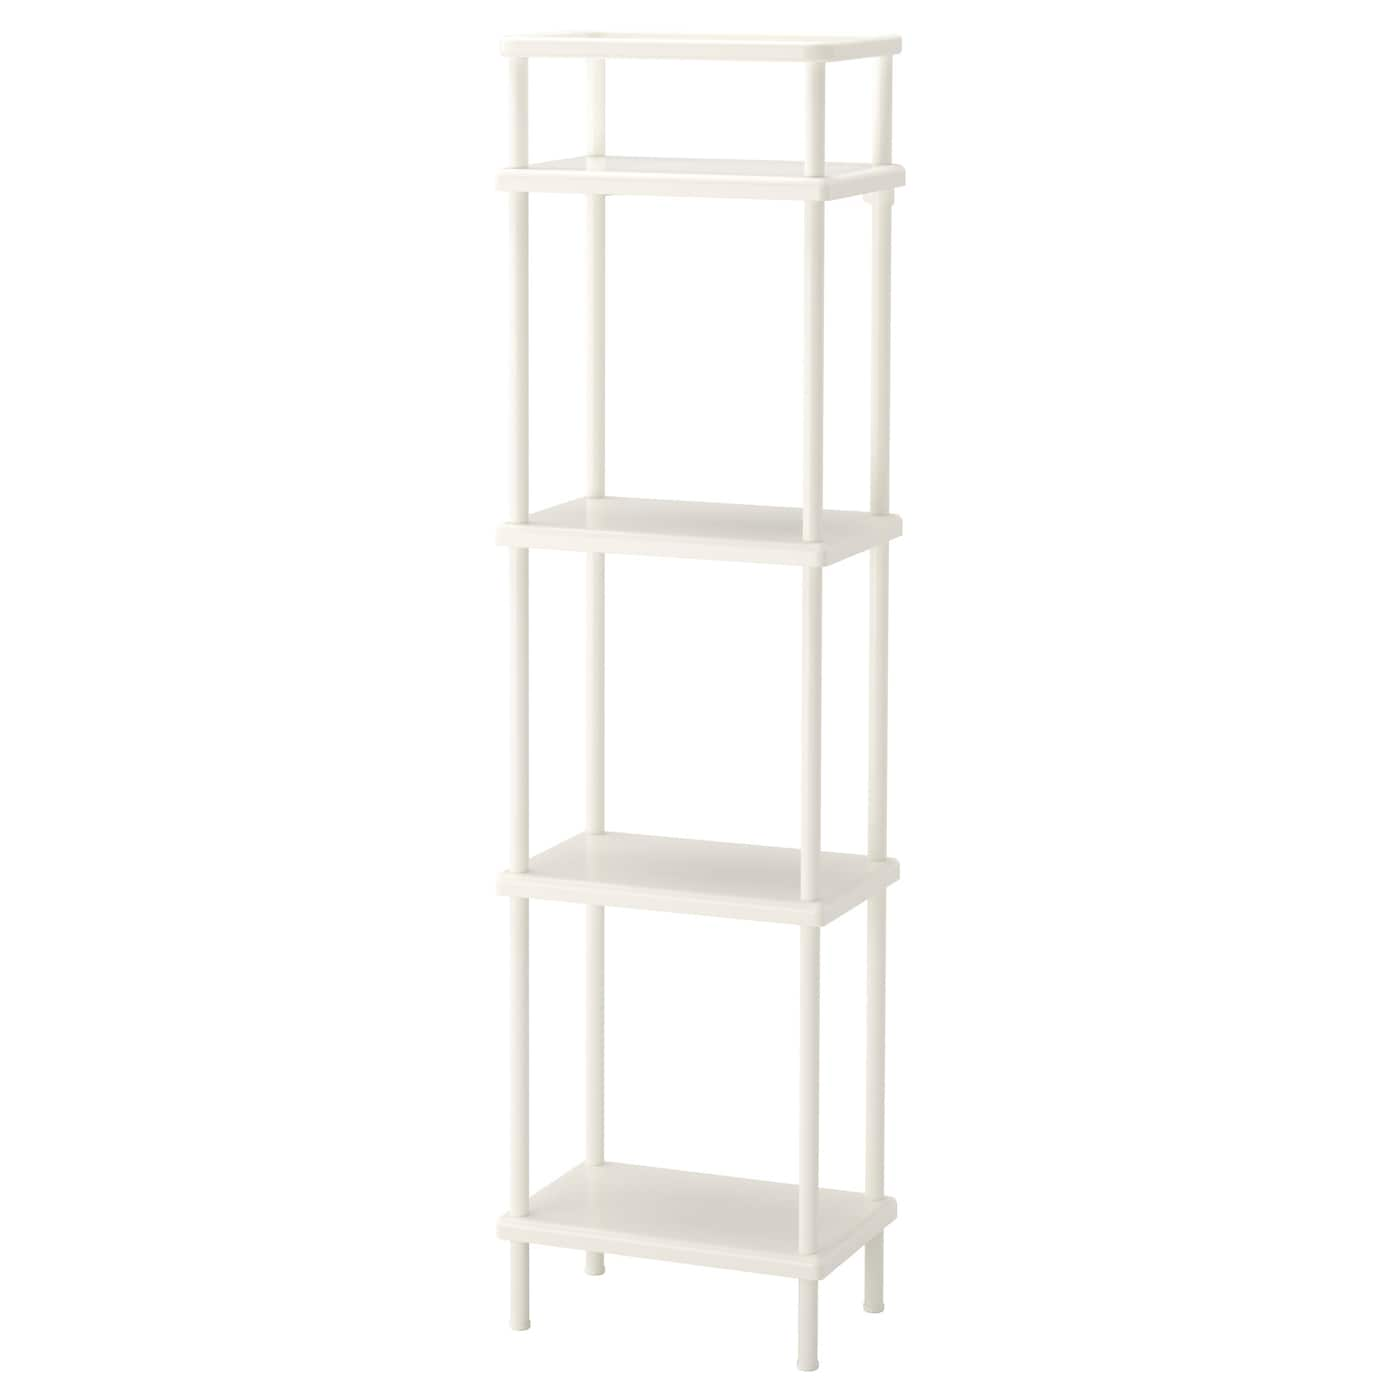 Dynan shelf unit white 40x27x148 cm ikea for Metal bathroom shelving unit